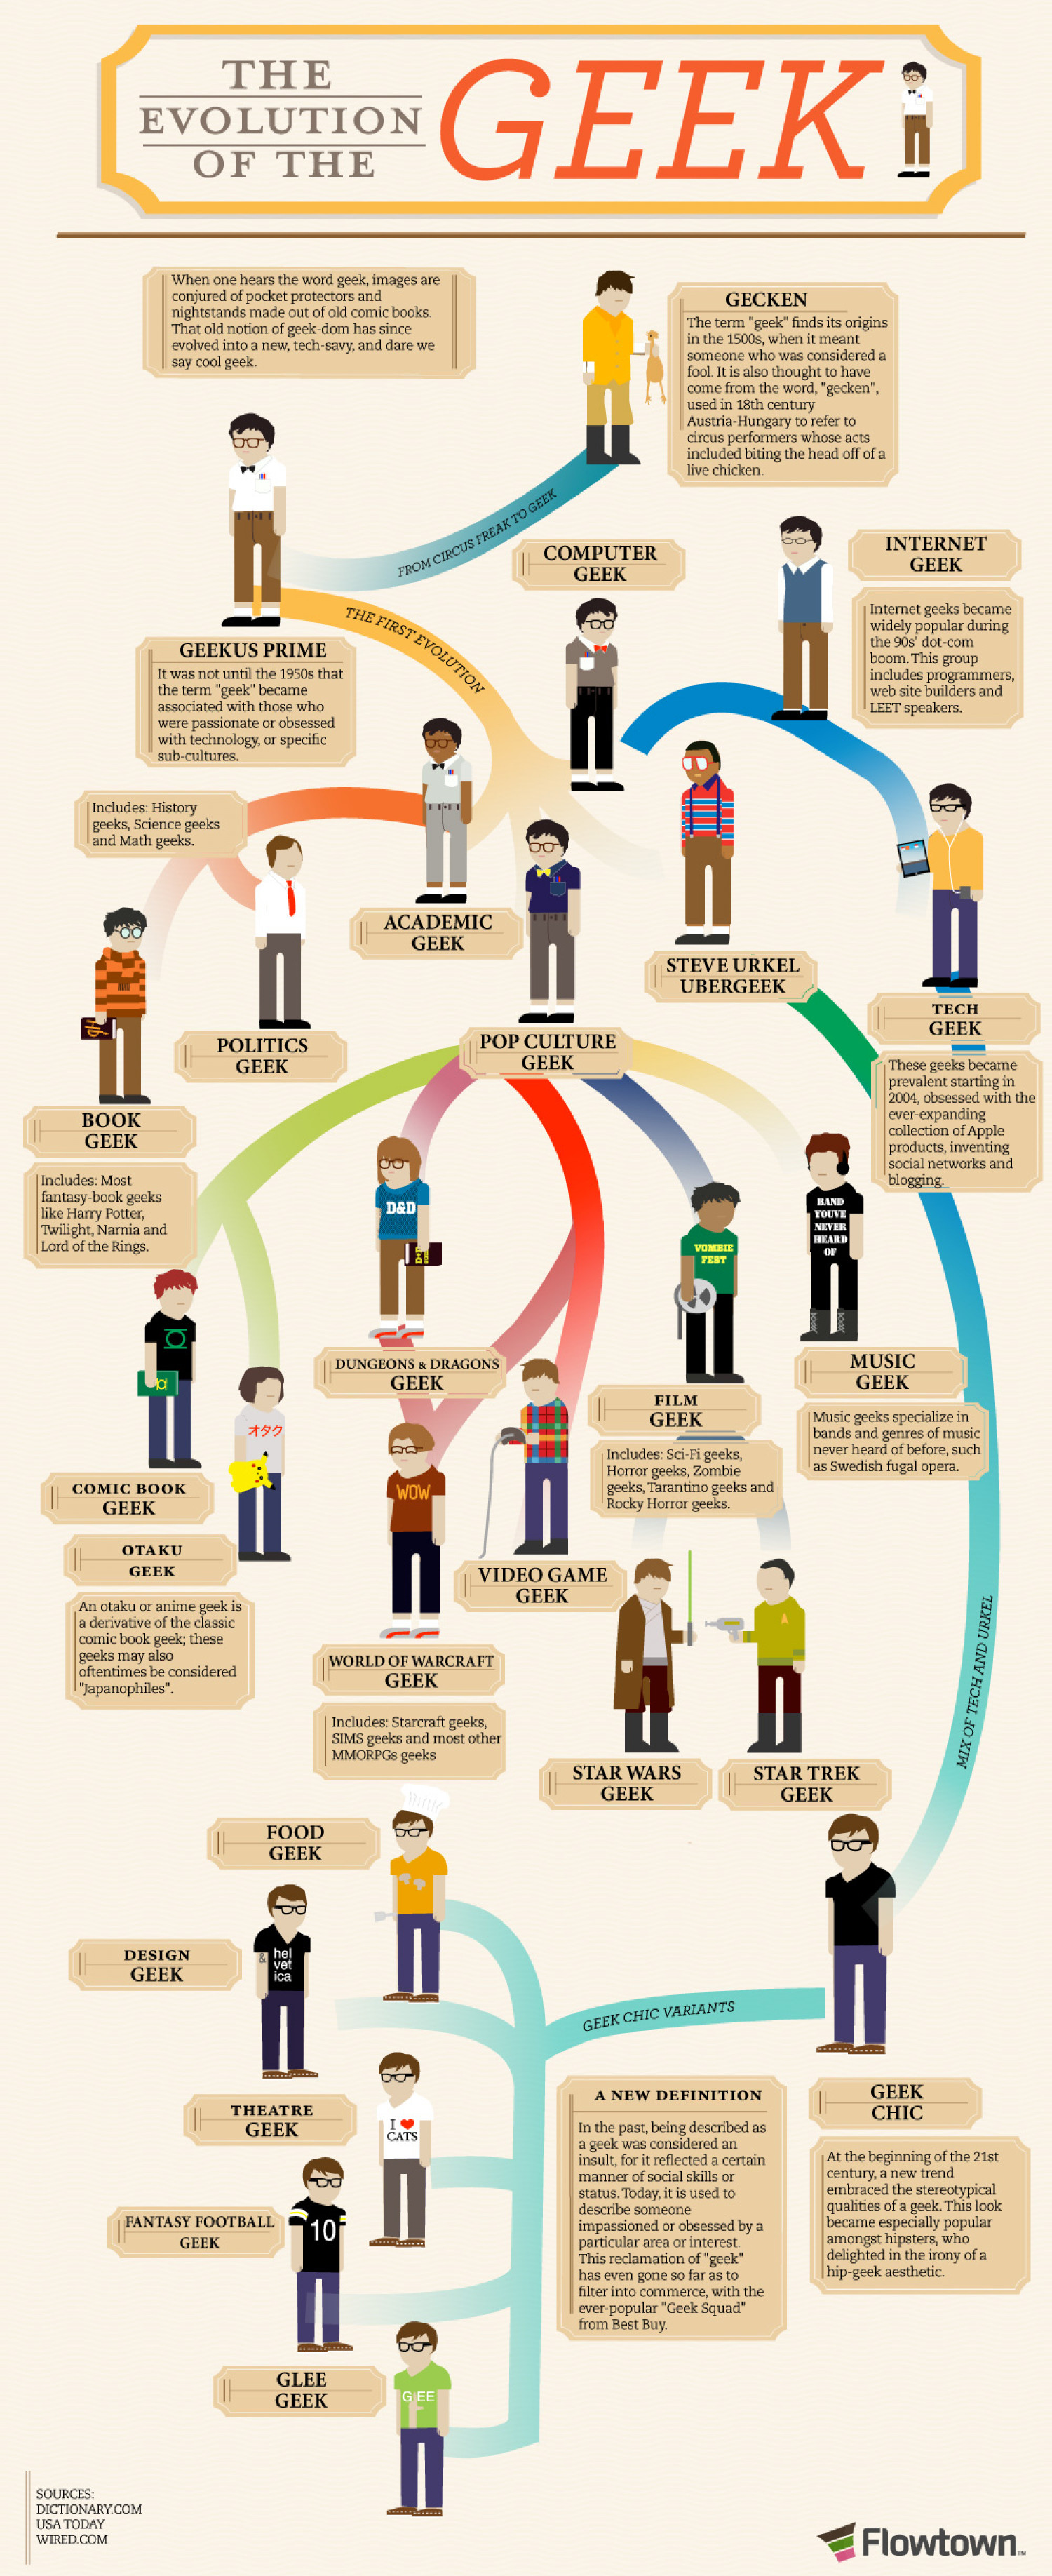 The Evolution of the Geek Infographic